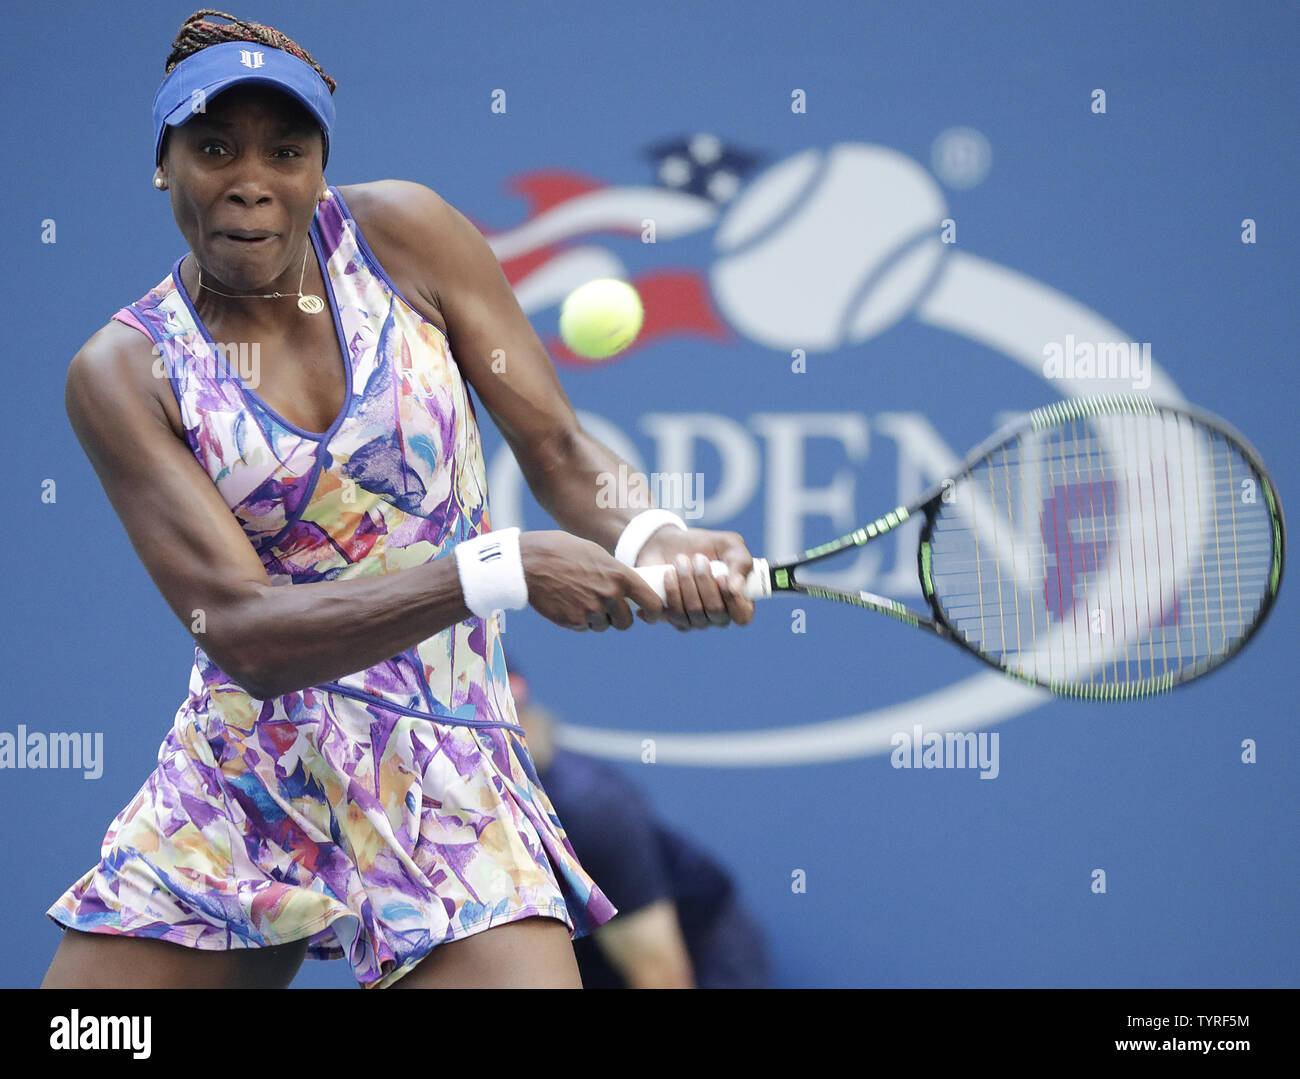 Venus Williams of the United States returns a ball to Kateryna Kozlova of the Ukraine in their first round match at the 2016 US Open Tennis Championships at the USTA Billie Jean King National Tennis Center in New York City on August 30, 2016.      Photo by John Angelillo/UPI - Stock Image